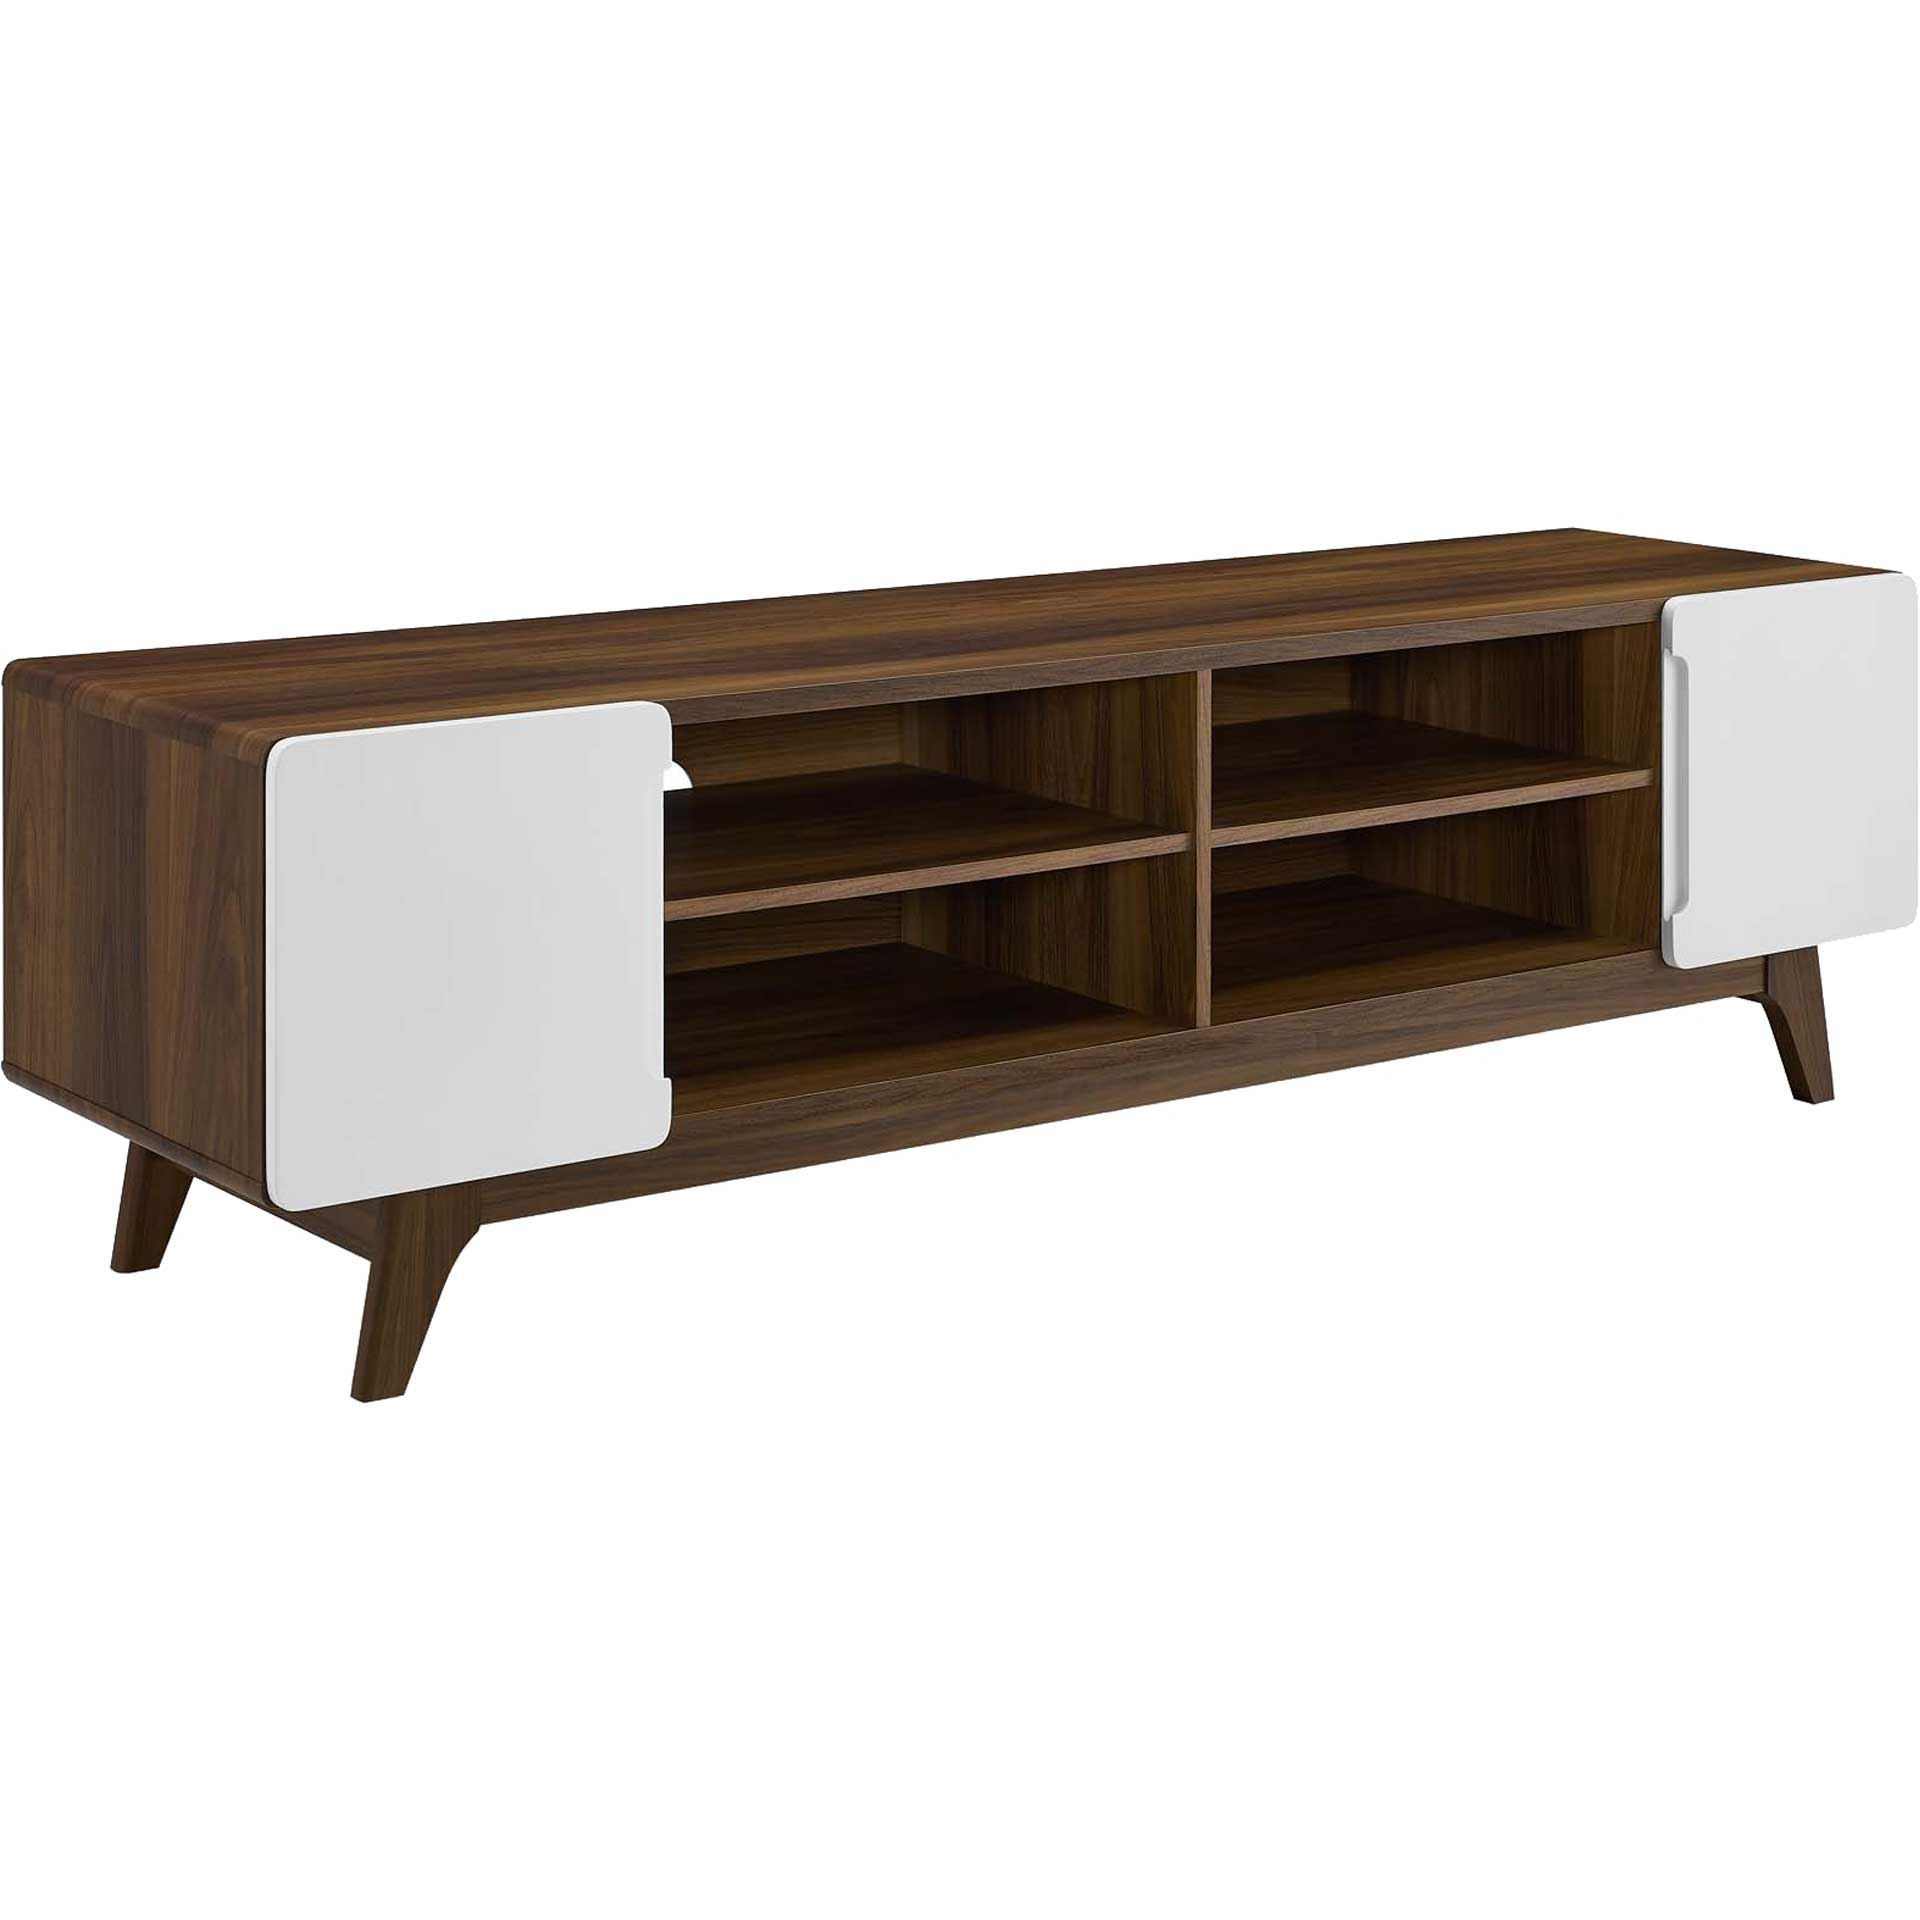 Titus Wood TV Stand Walnut/White